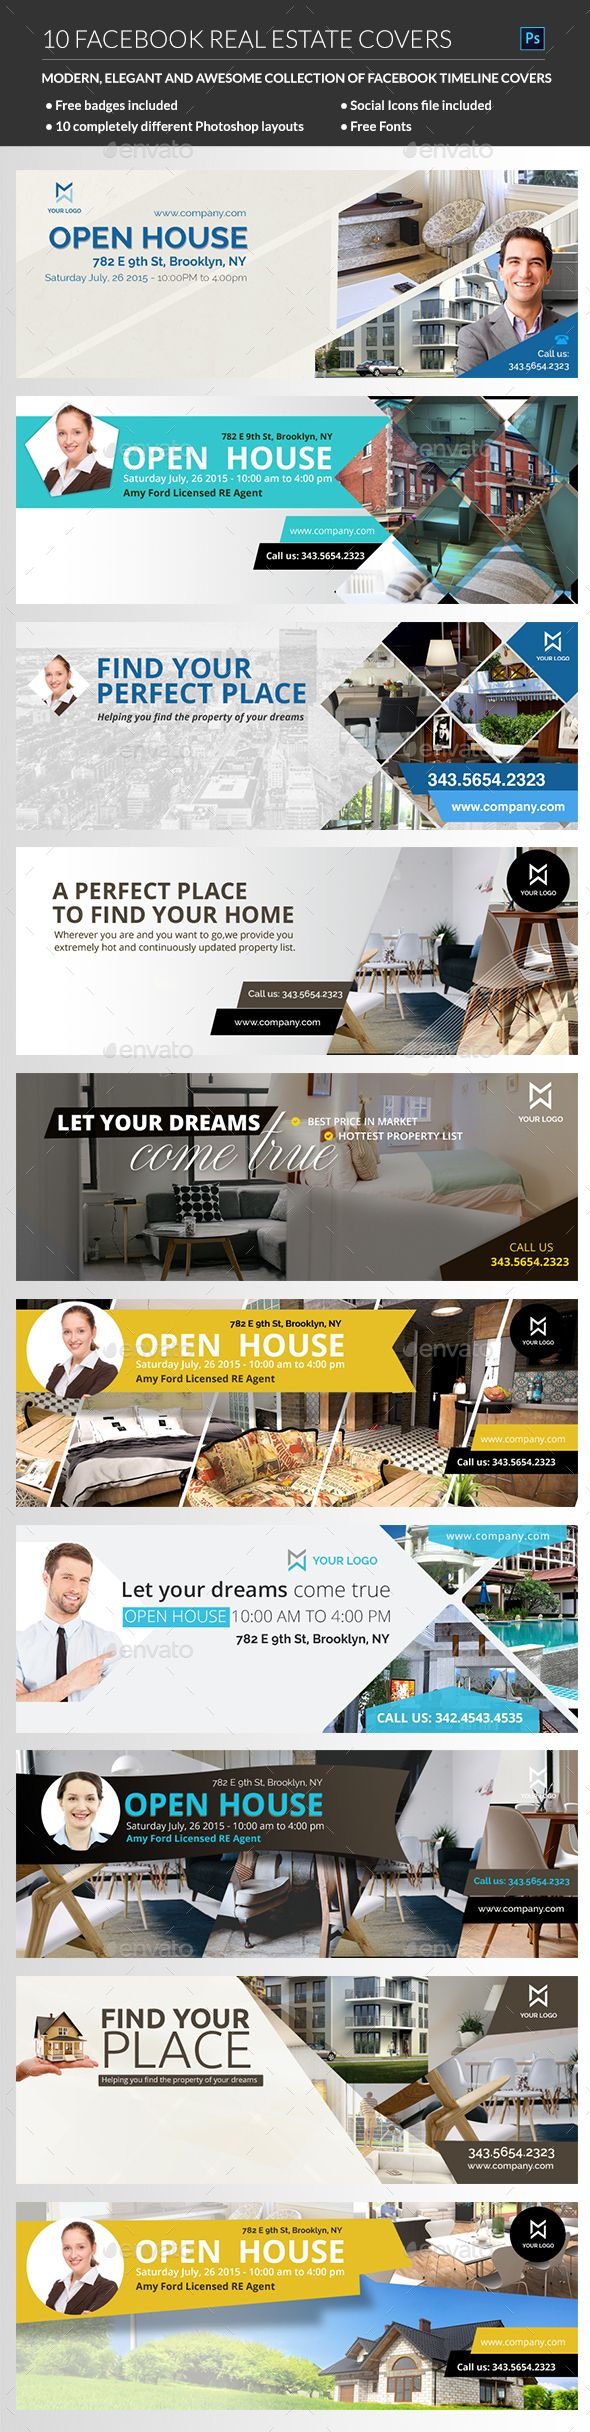 real estate facebook cover template psd download here http